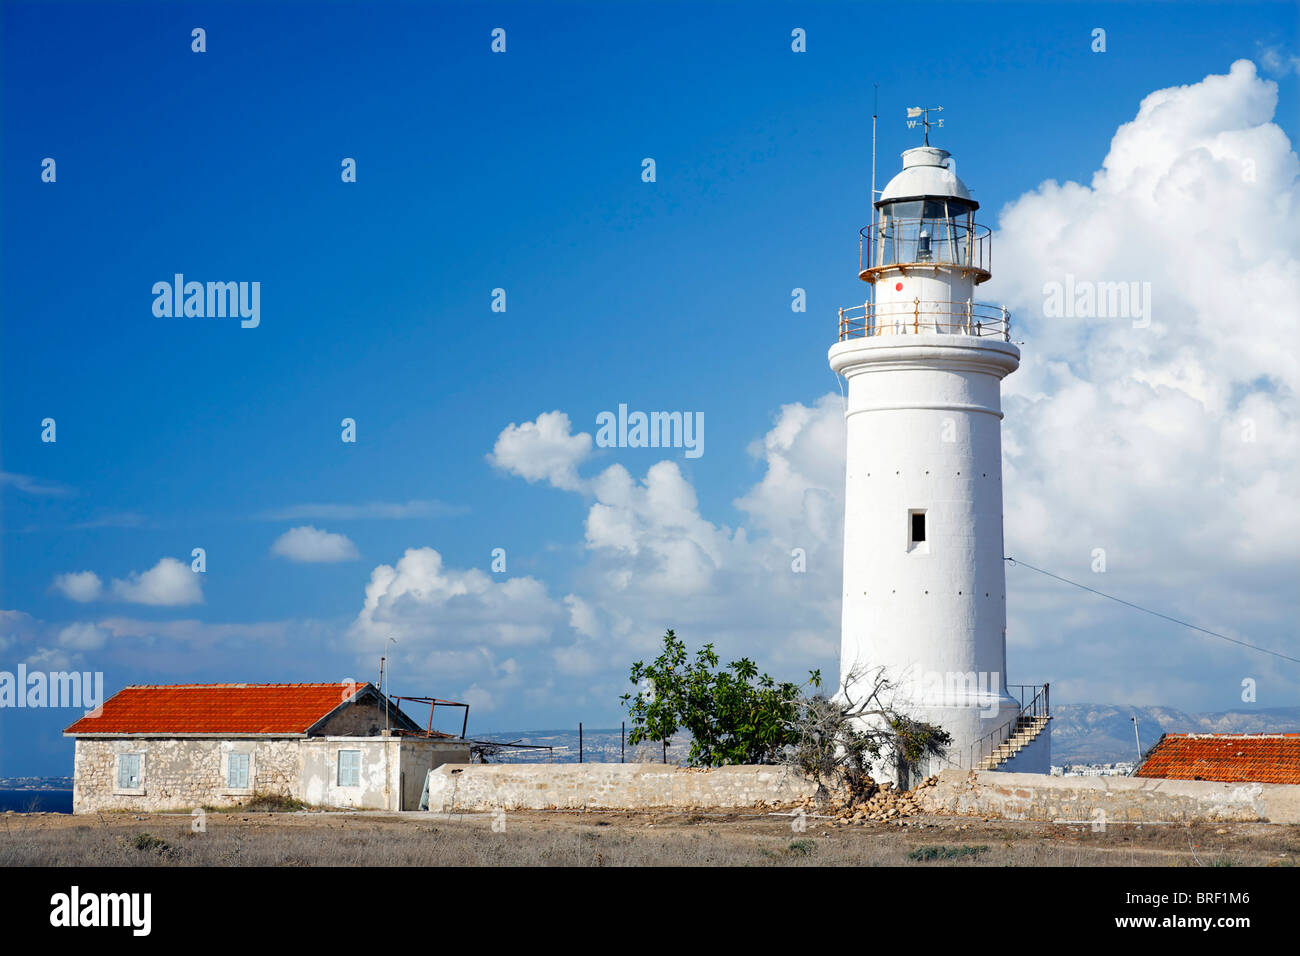 White lighthouse, house, red roof, blue sky, white clouds, Paphos, Pafos, Cyprus, Europe - Stock Image